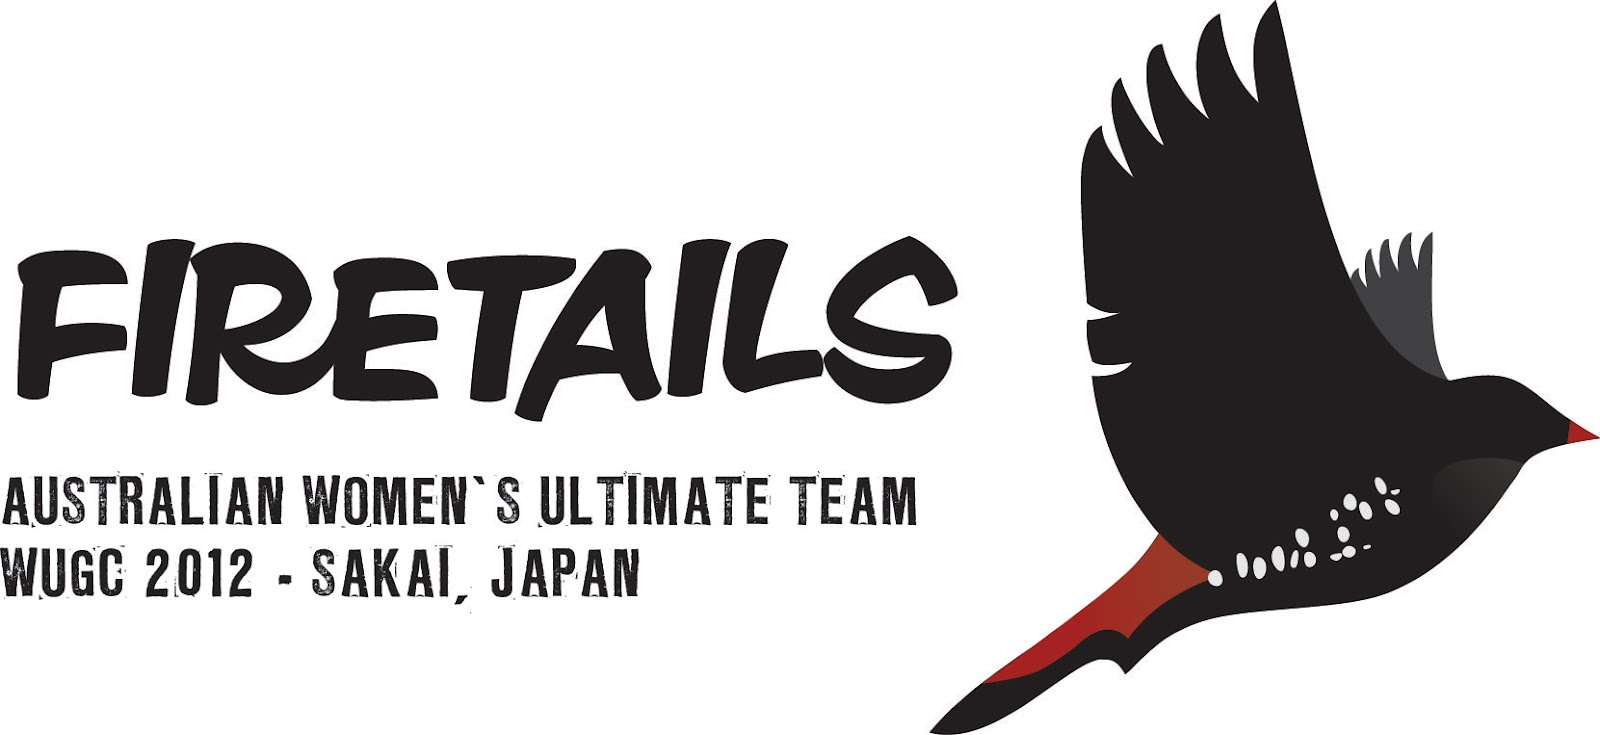 Australian Firetails Ultimate Team - World Ultimate & Guts Championships